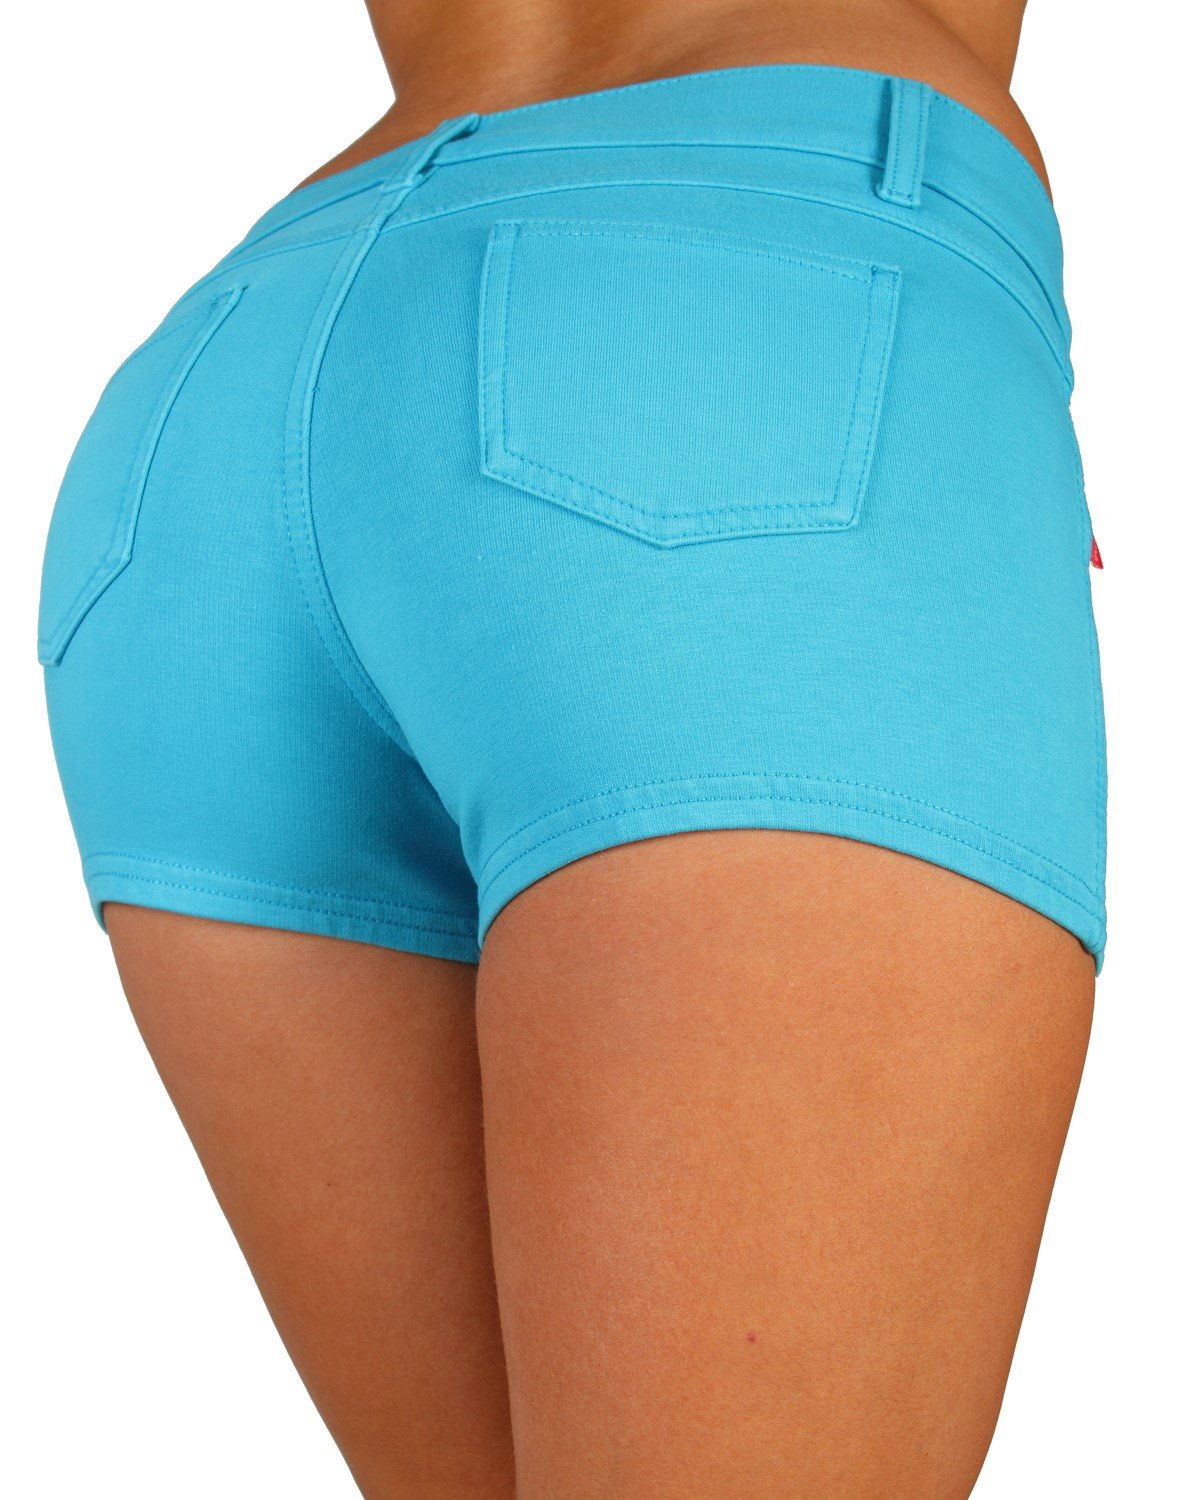 Basic Booty Shorts Premium Stretch French Terry Moleton With a gentle butt lifting stitching in Turquoise Size S